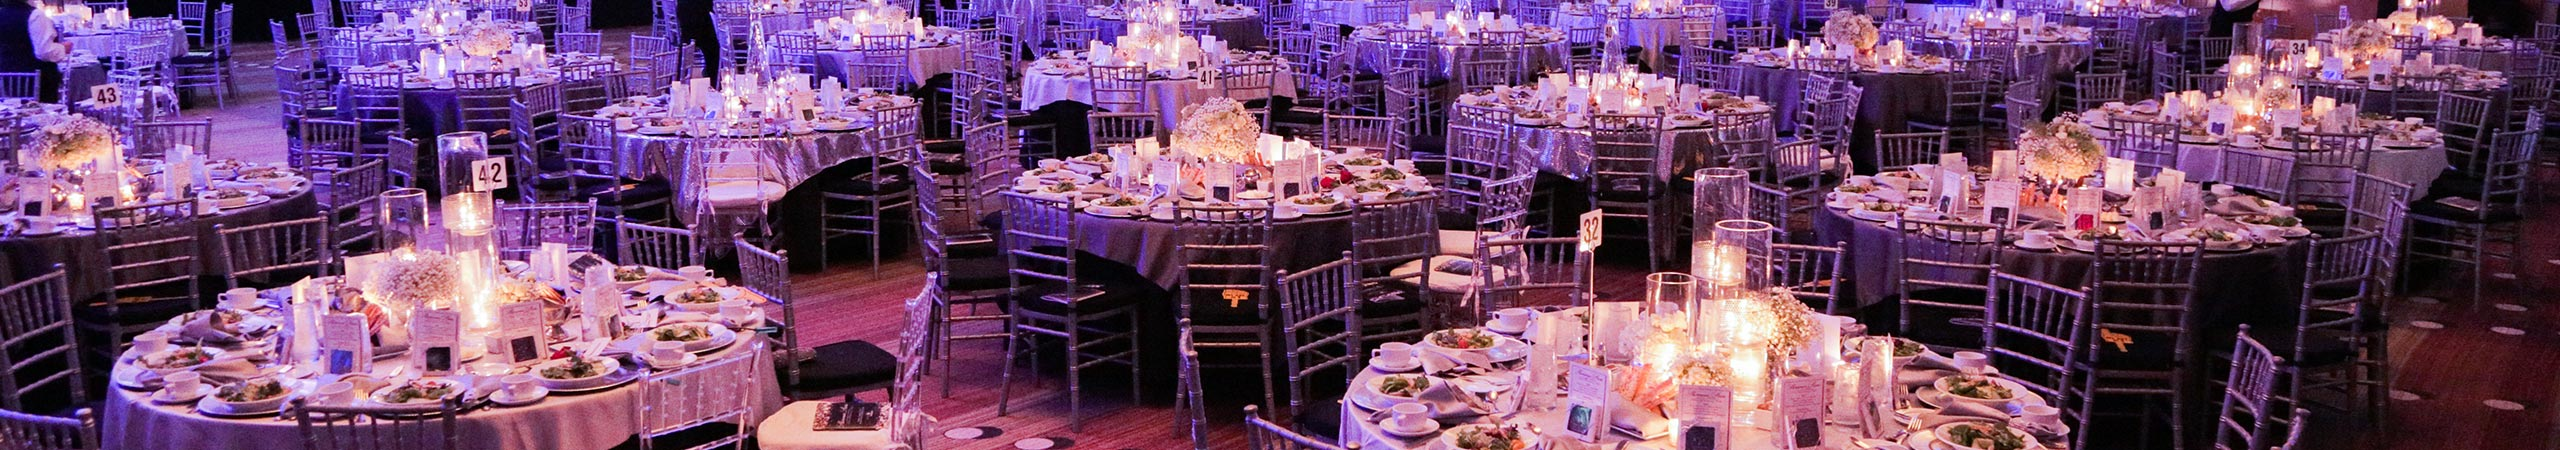 Jakcsonville-Florida-Alt-Events-Parties-Gala